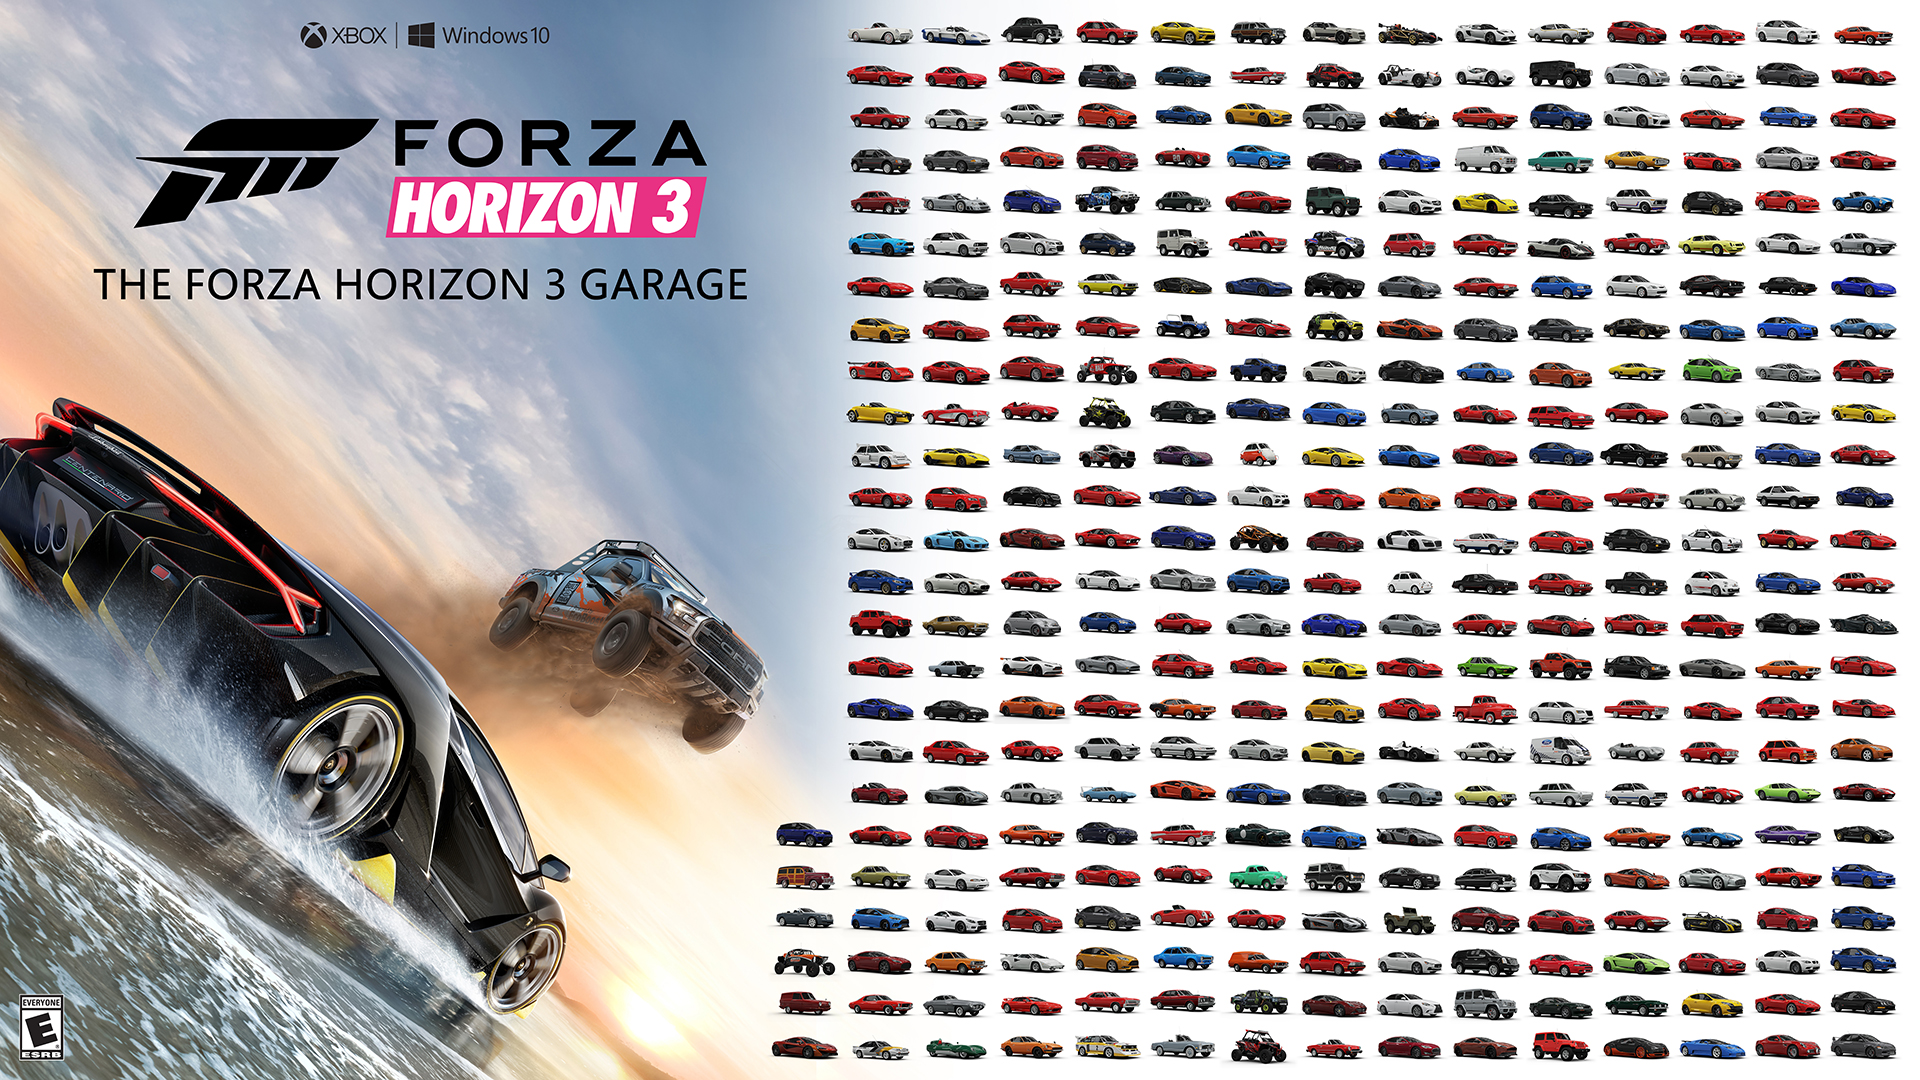 How To Unlock All Forza Horizon 3 Cars